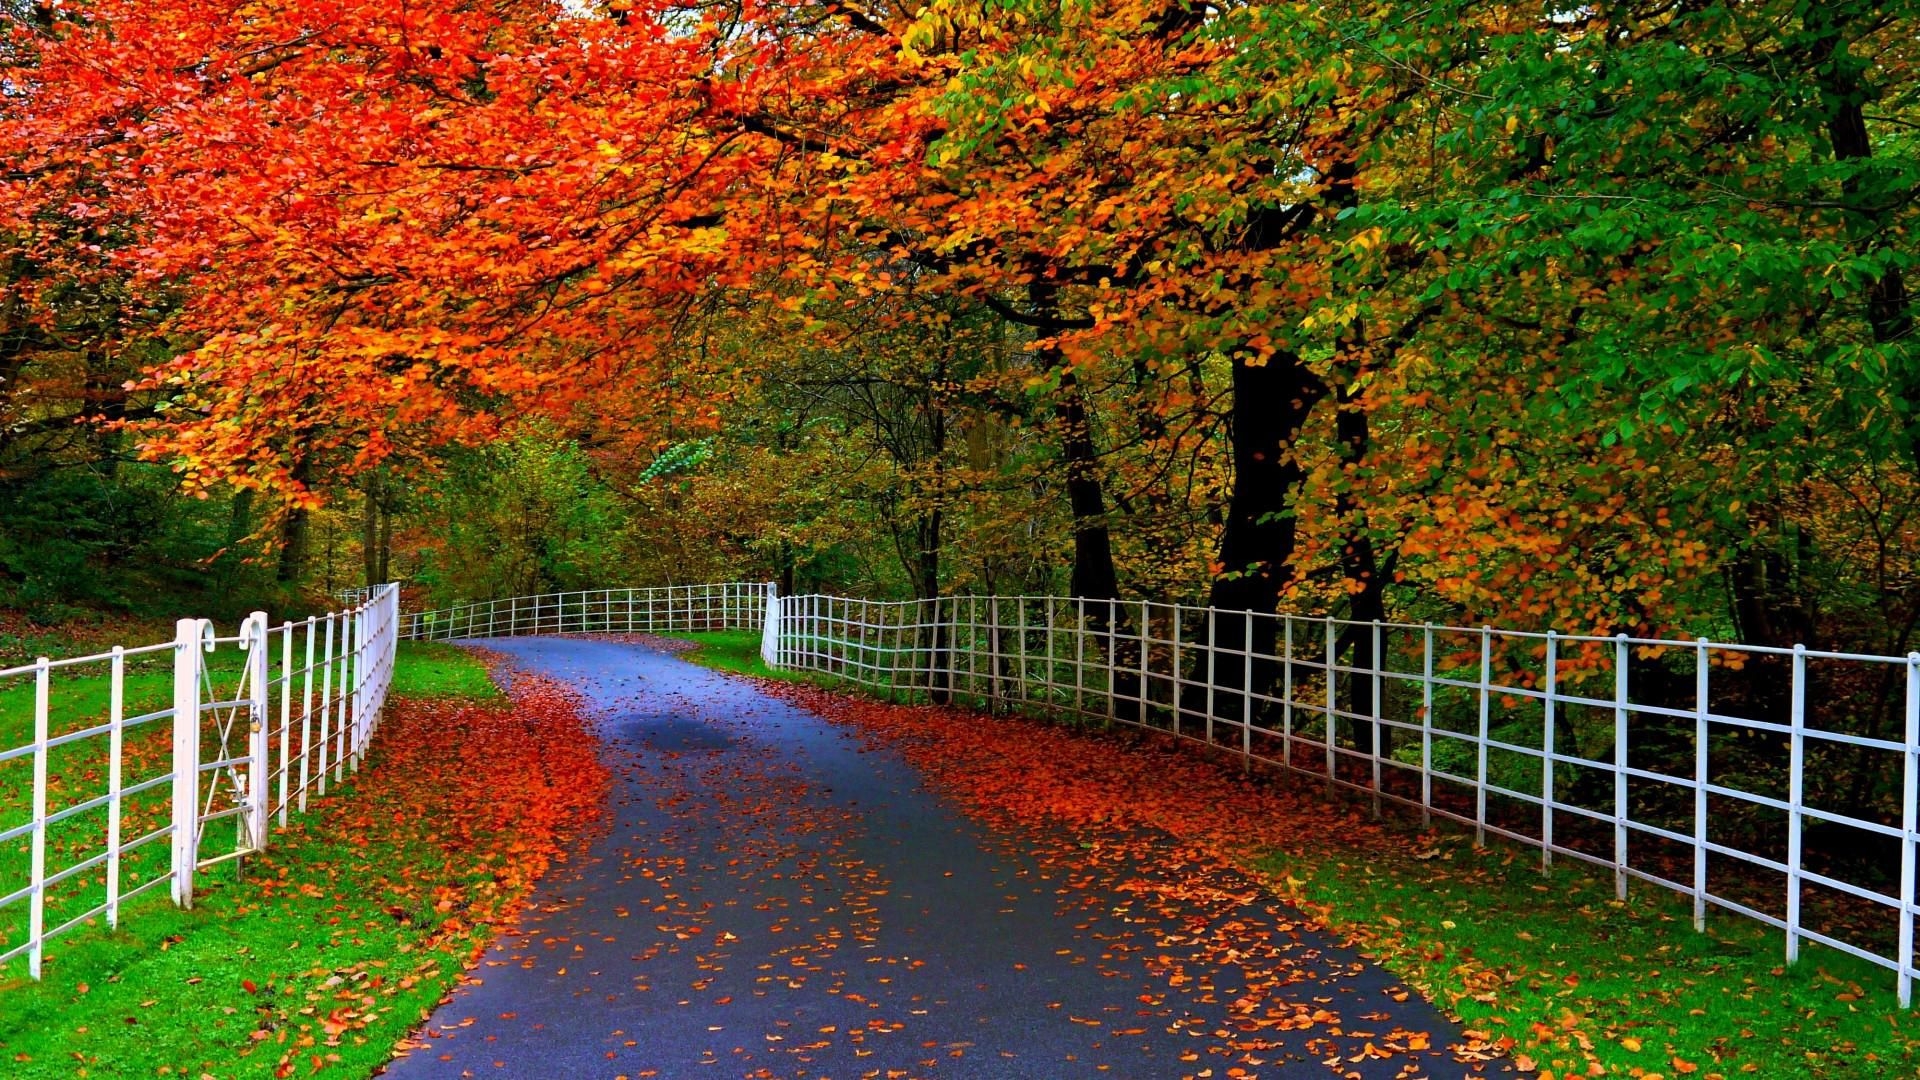 Forests Parks Trees Leaves Roads Fences Natural Beauty Of Autumn